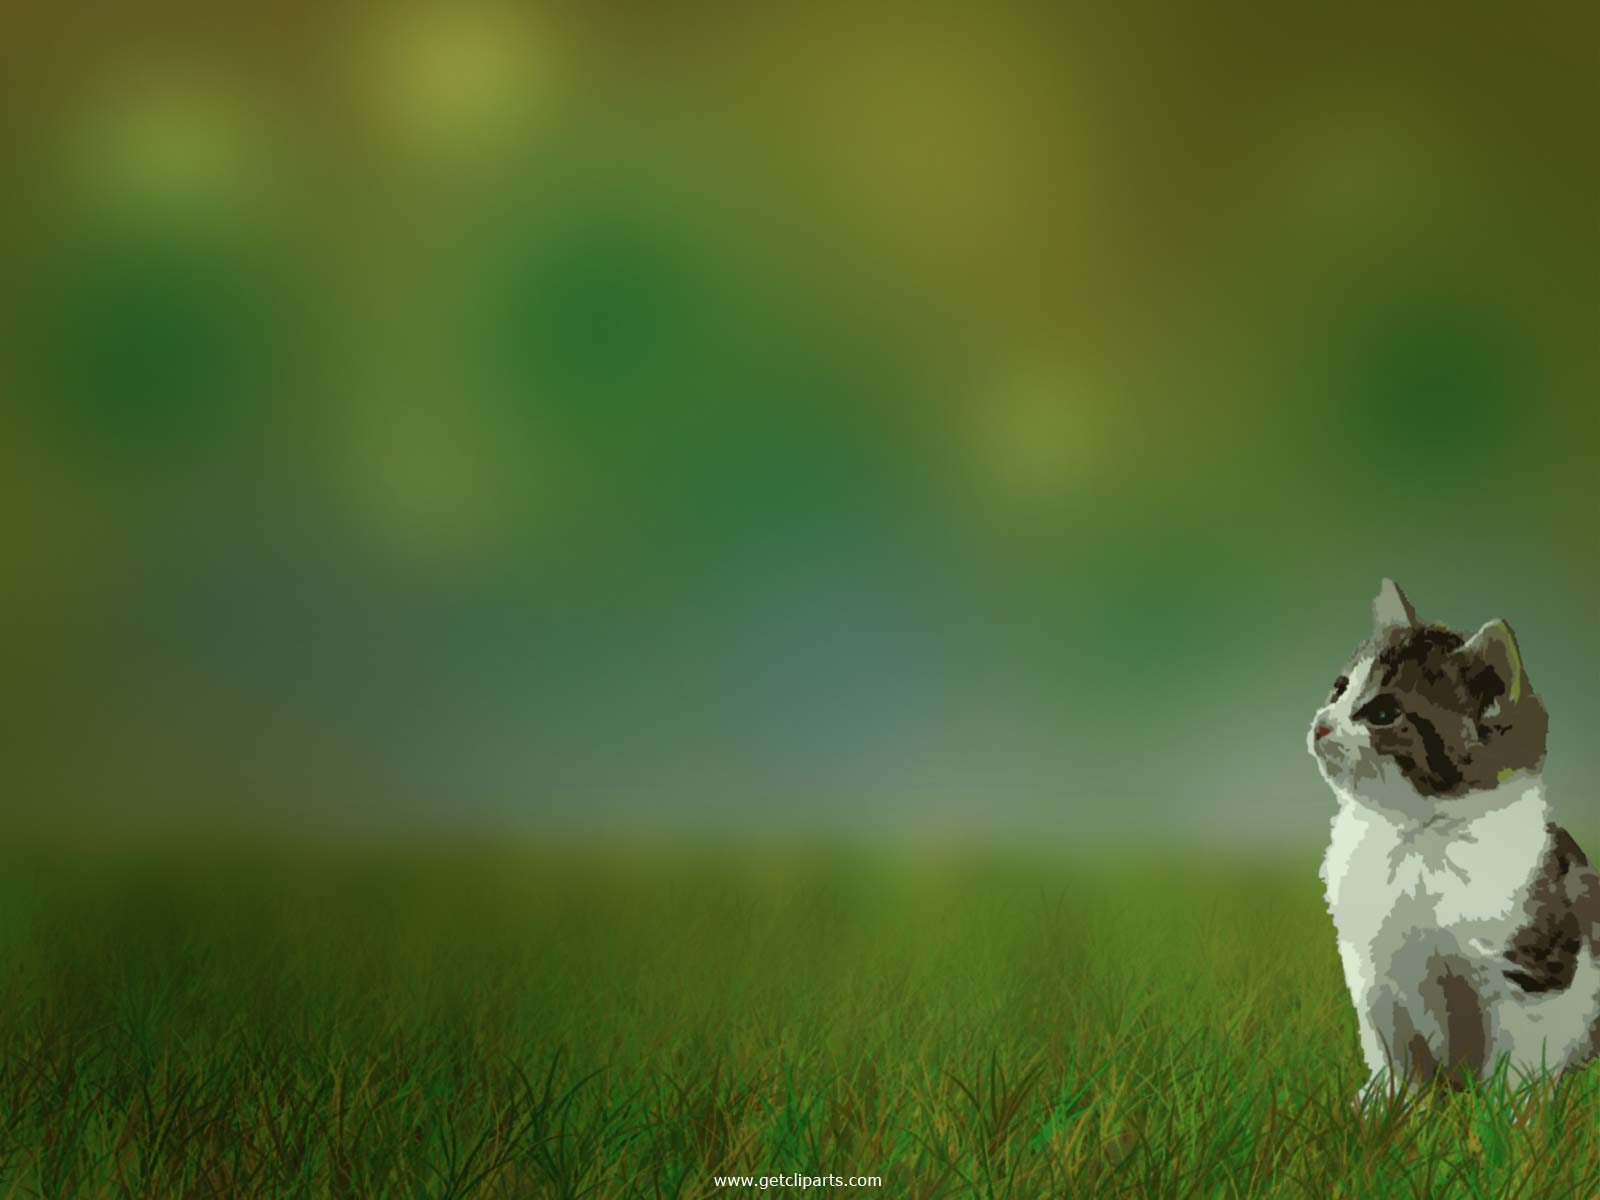 Cute Animals Wallpapers 8511 Hd Wallpapers in Animals   Imagescicom 1600x1200